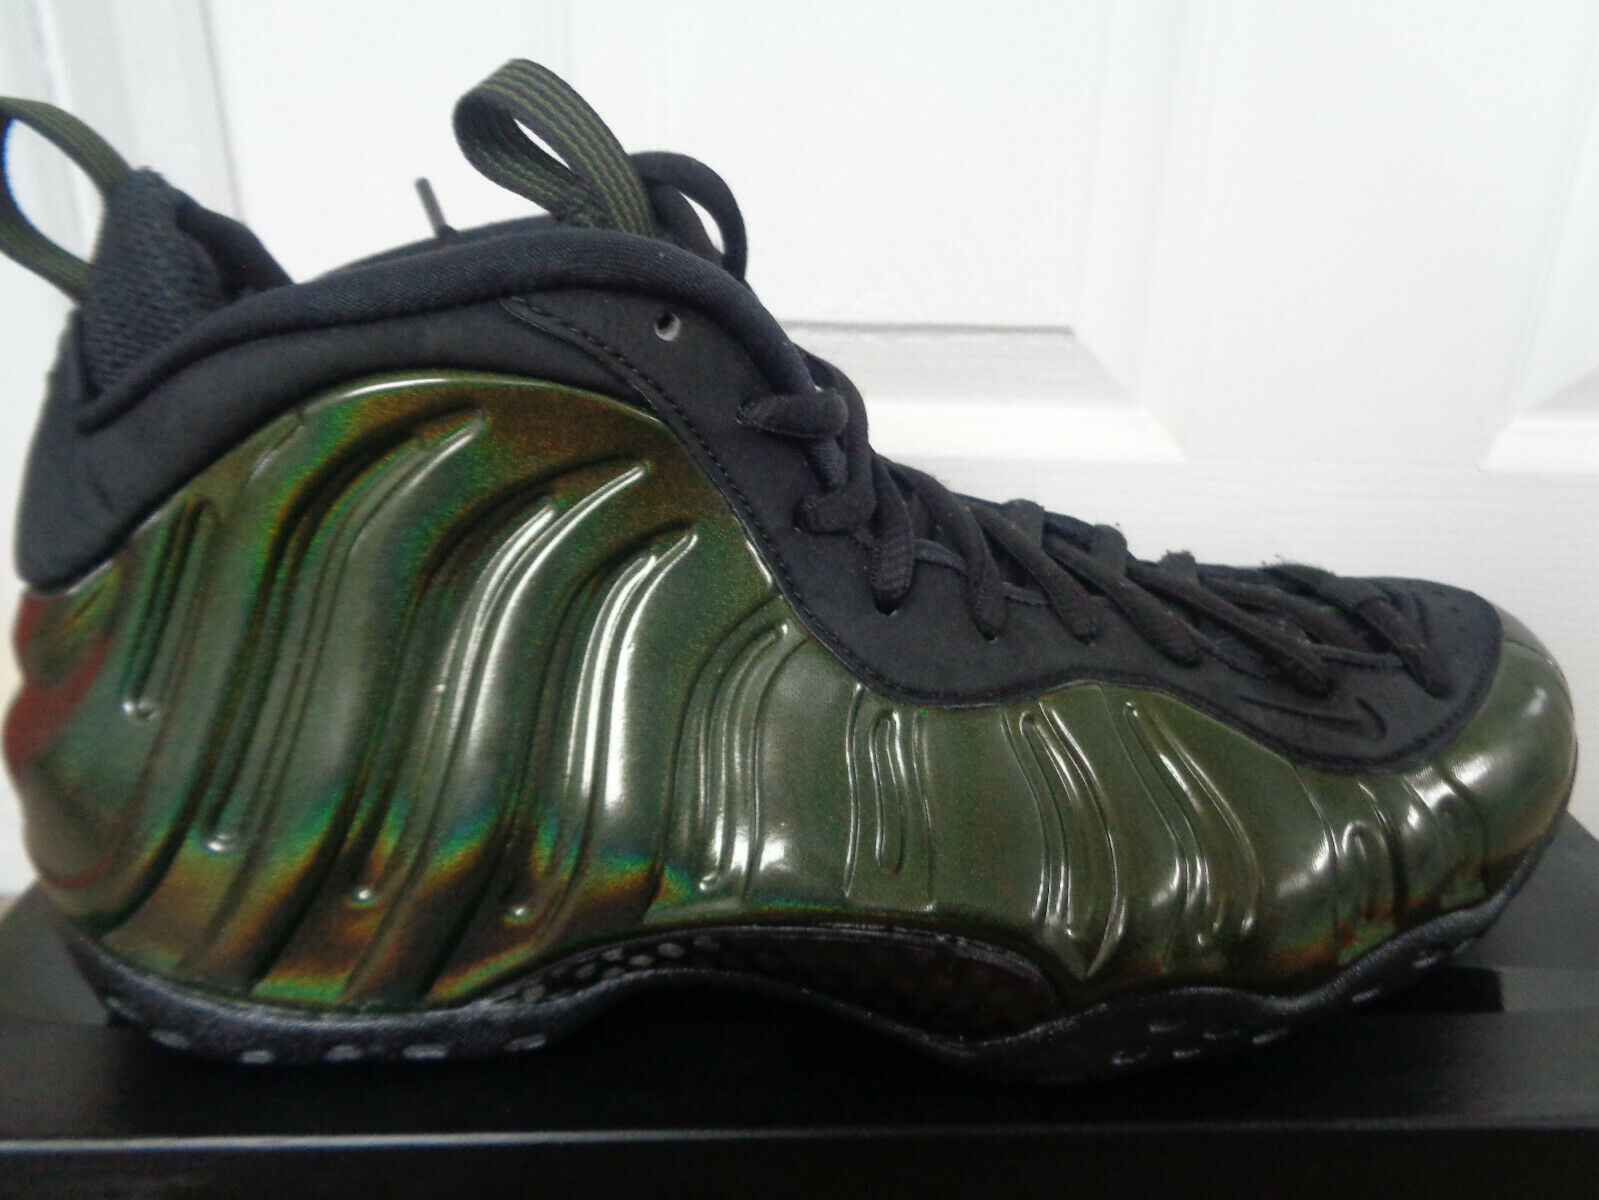 021d67978ce1 Nike Nike Nike Air Foamposite One trainers shoes 314996 301 eu 42.5 us 9  NEW+